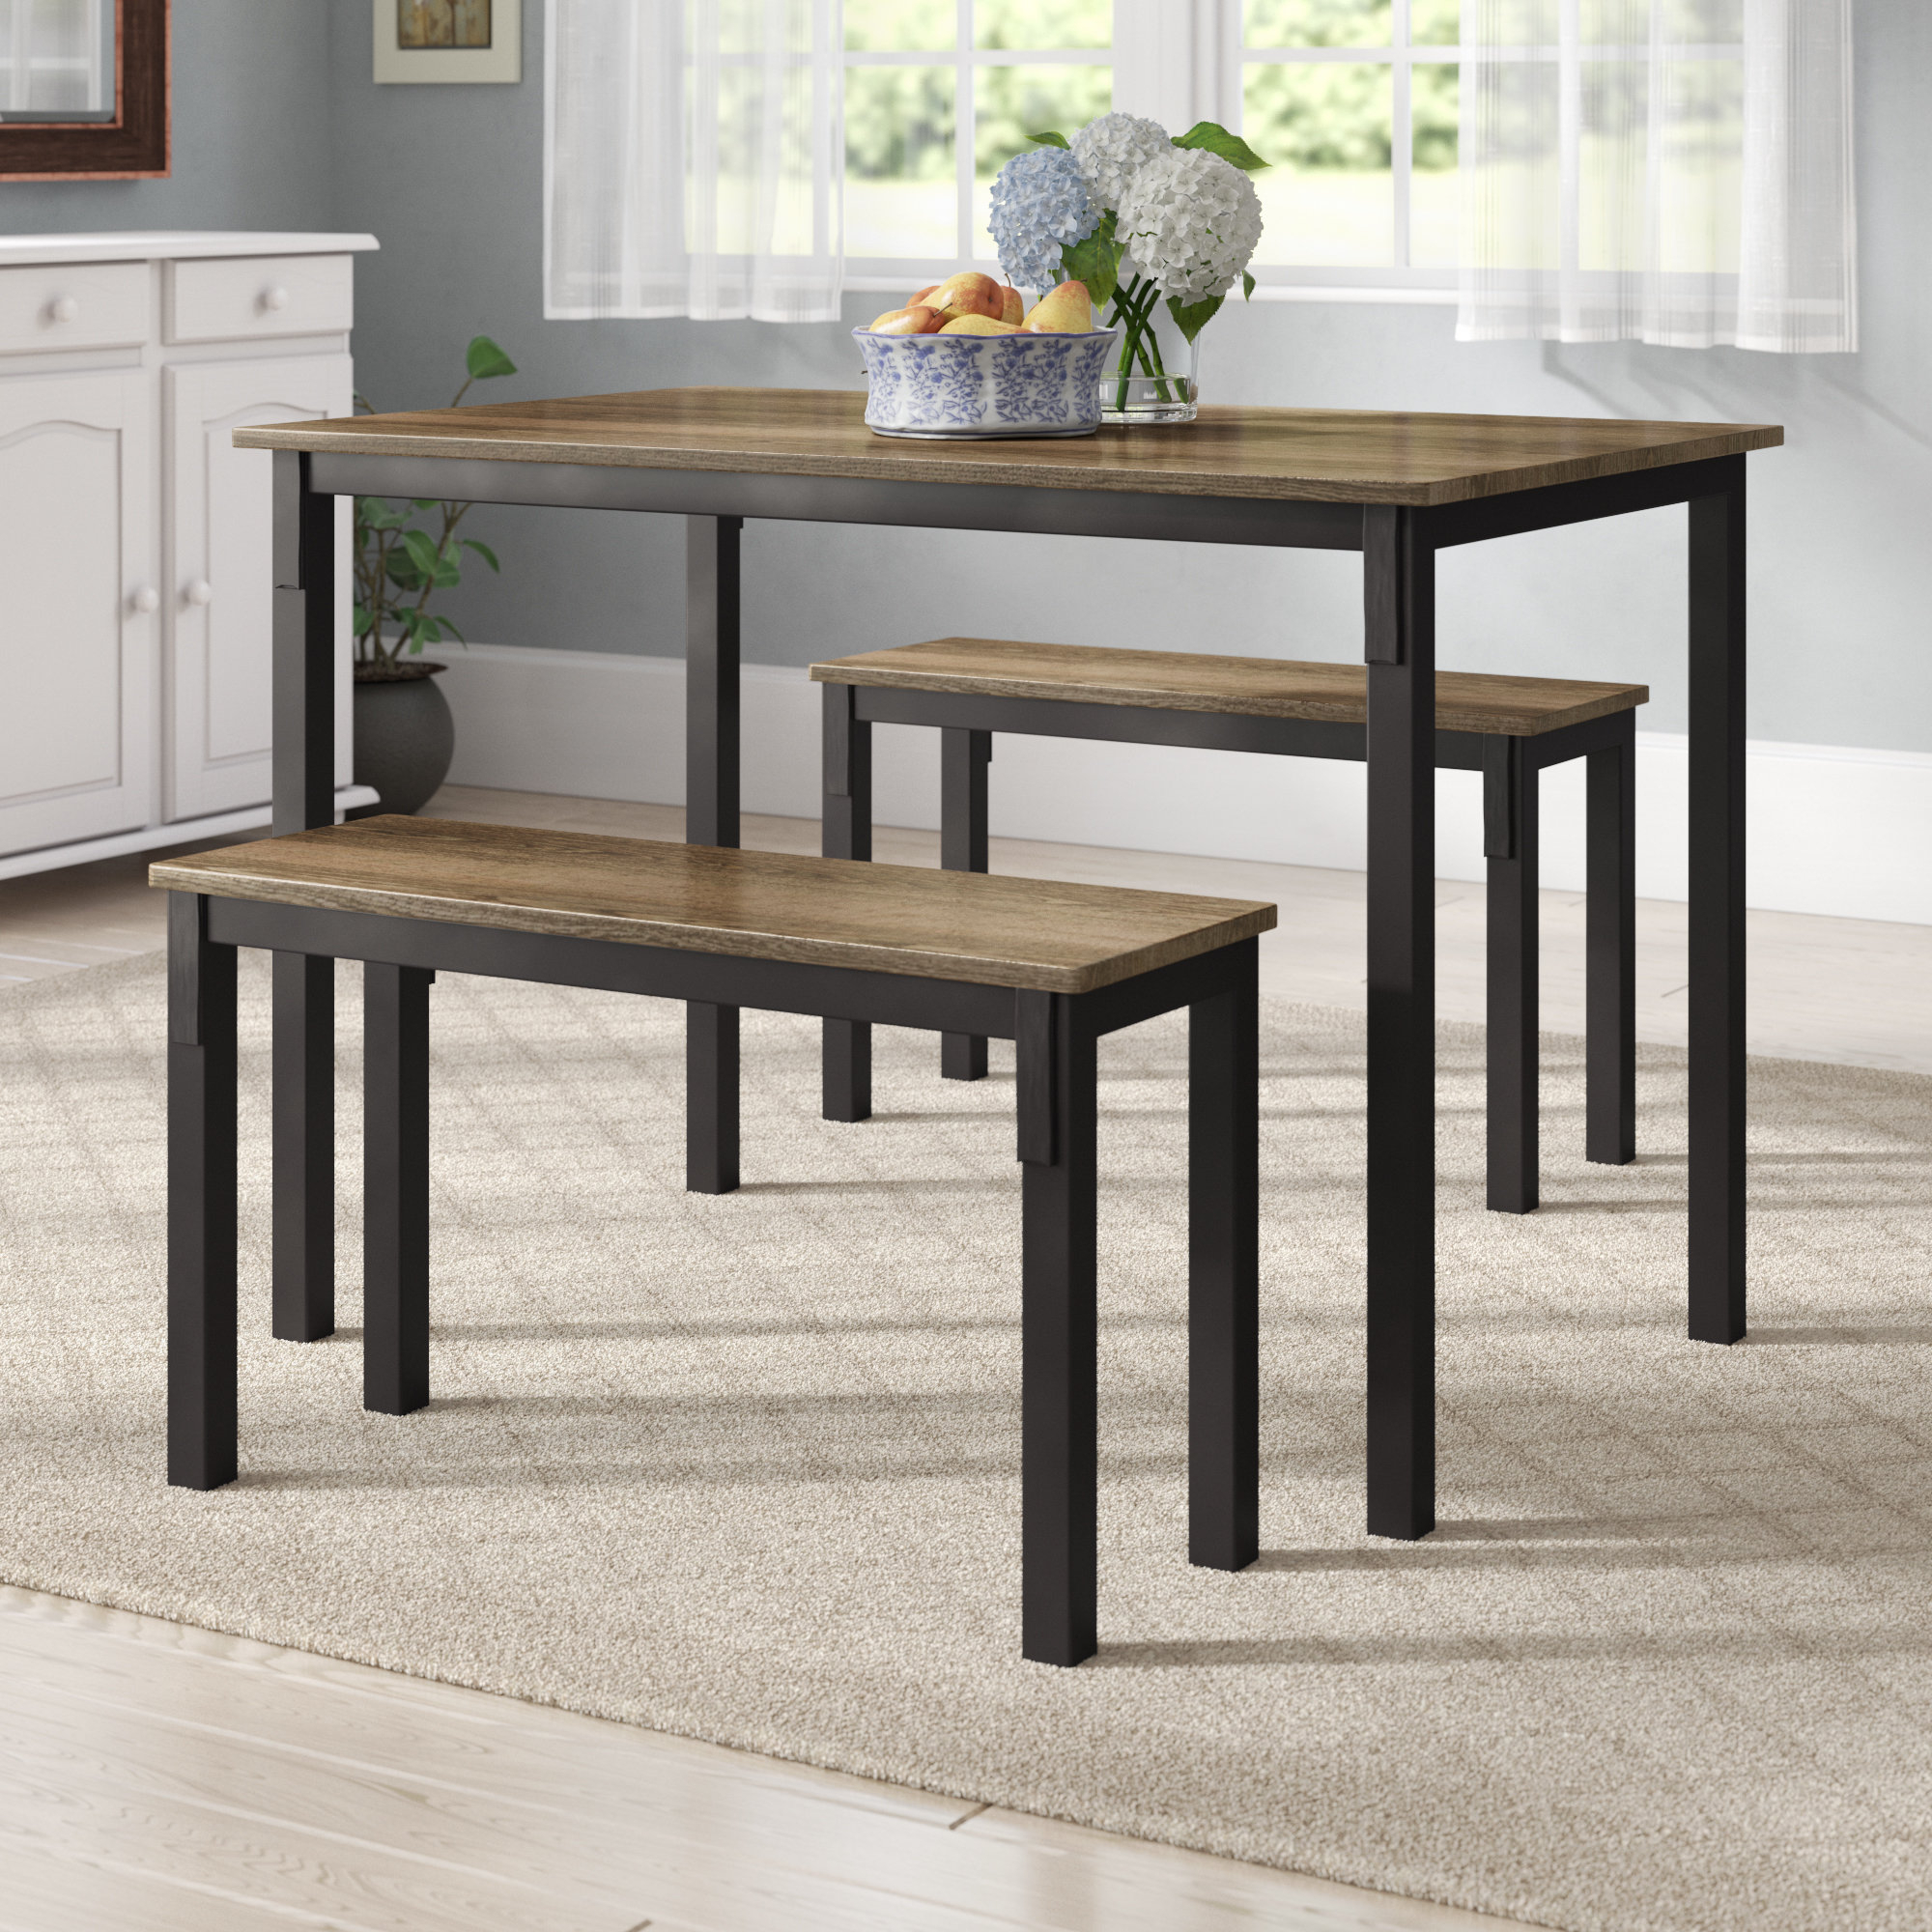 Wayfair Inside Latest Frida 3 Piece Dining Table Sets (View 4 of 25)